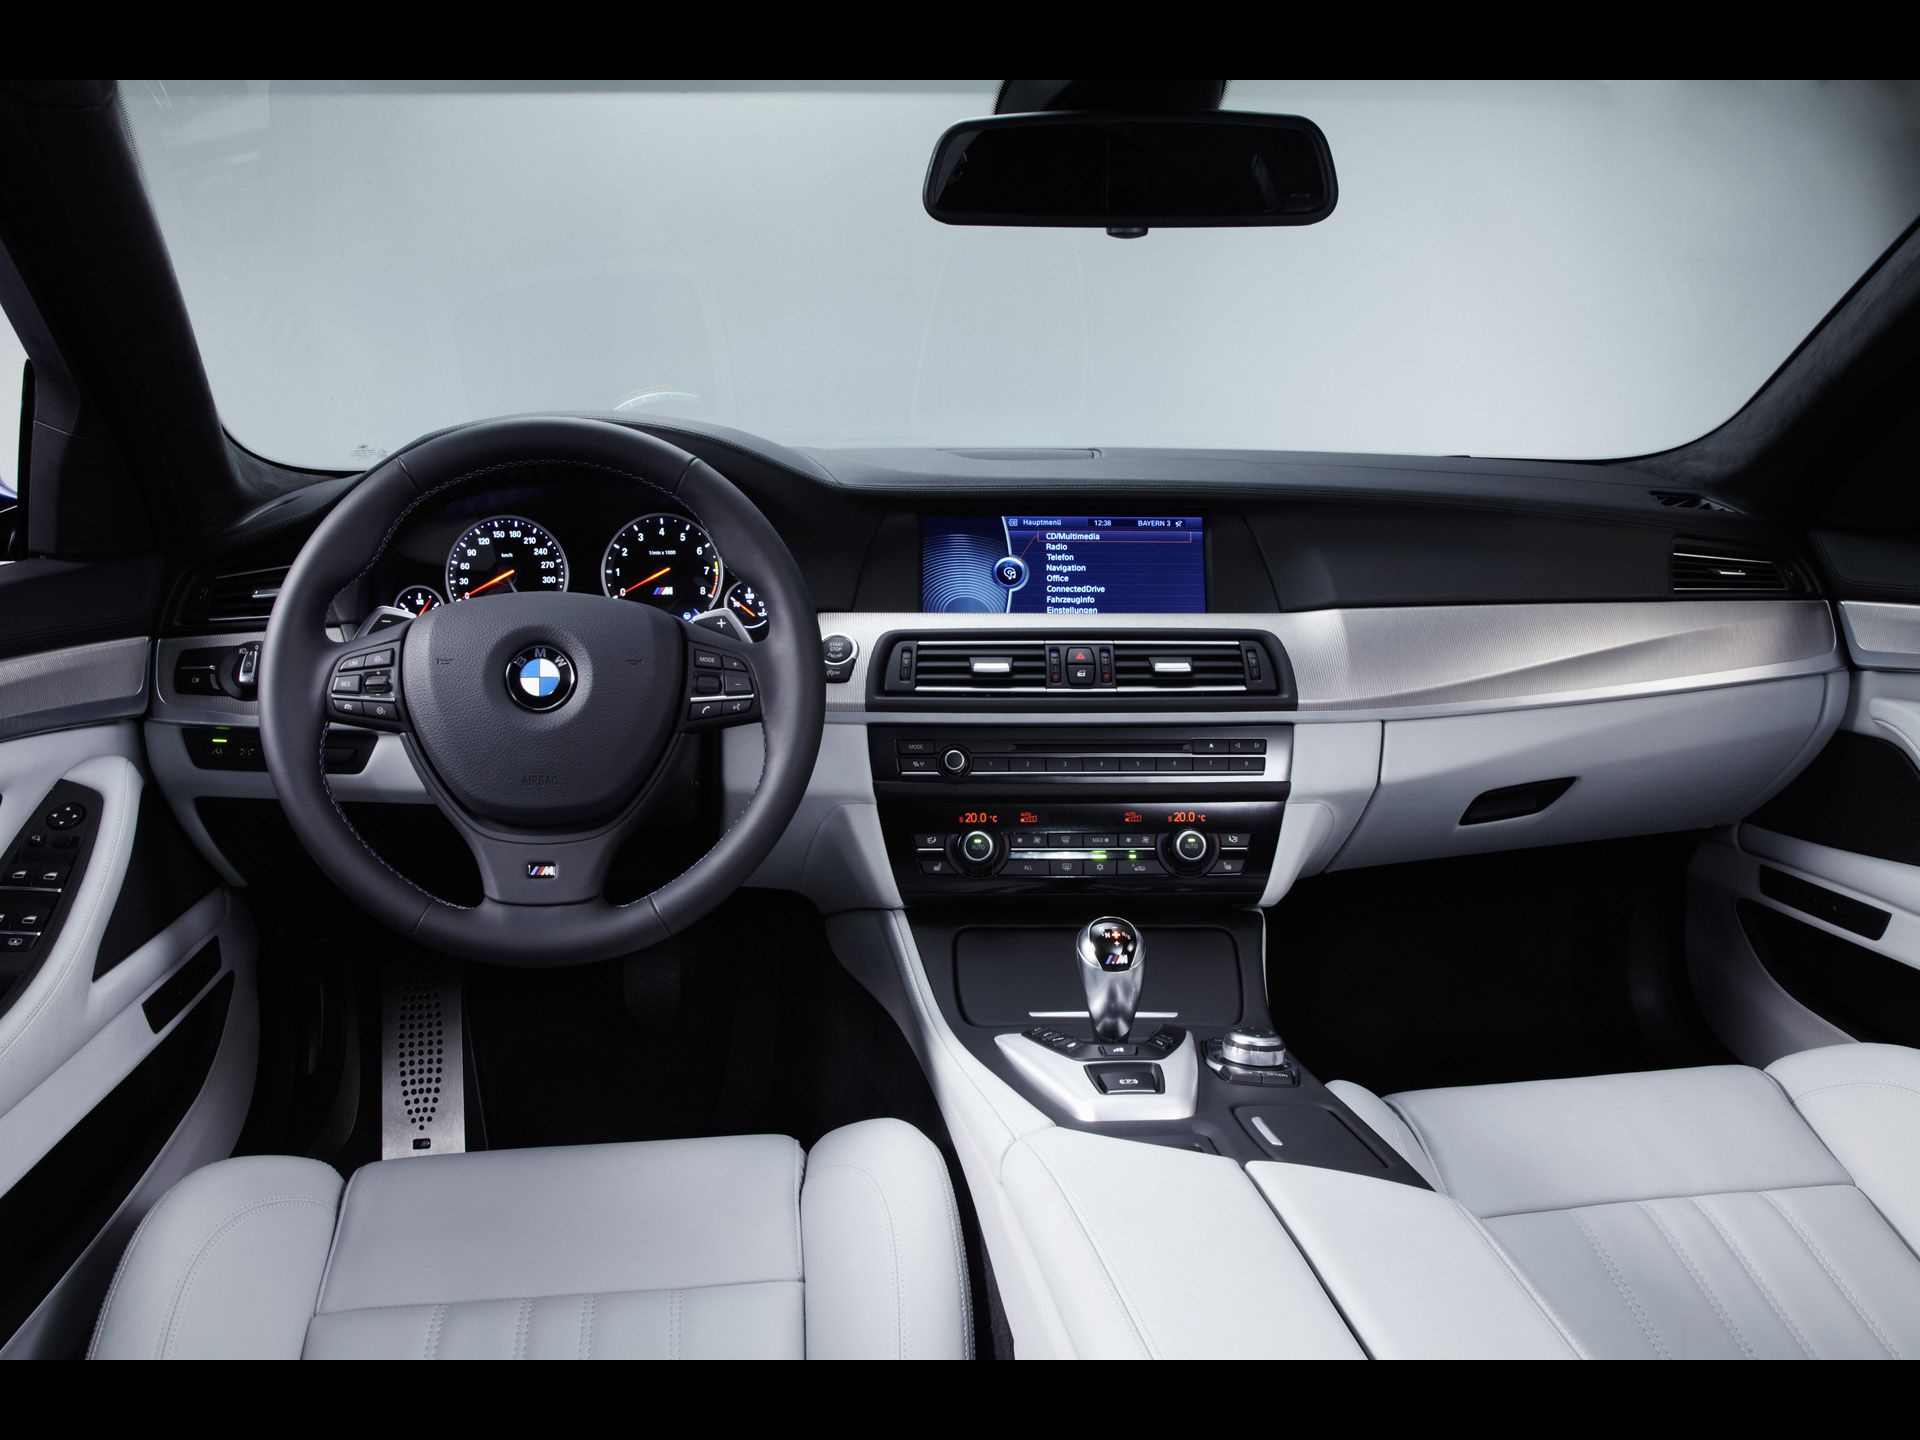 2012 Bmw M5 Dashboard With Images Bmw M5 Bmw Concept New Bmw